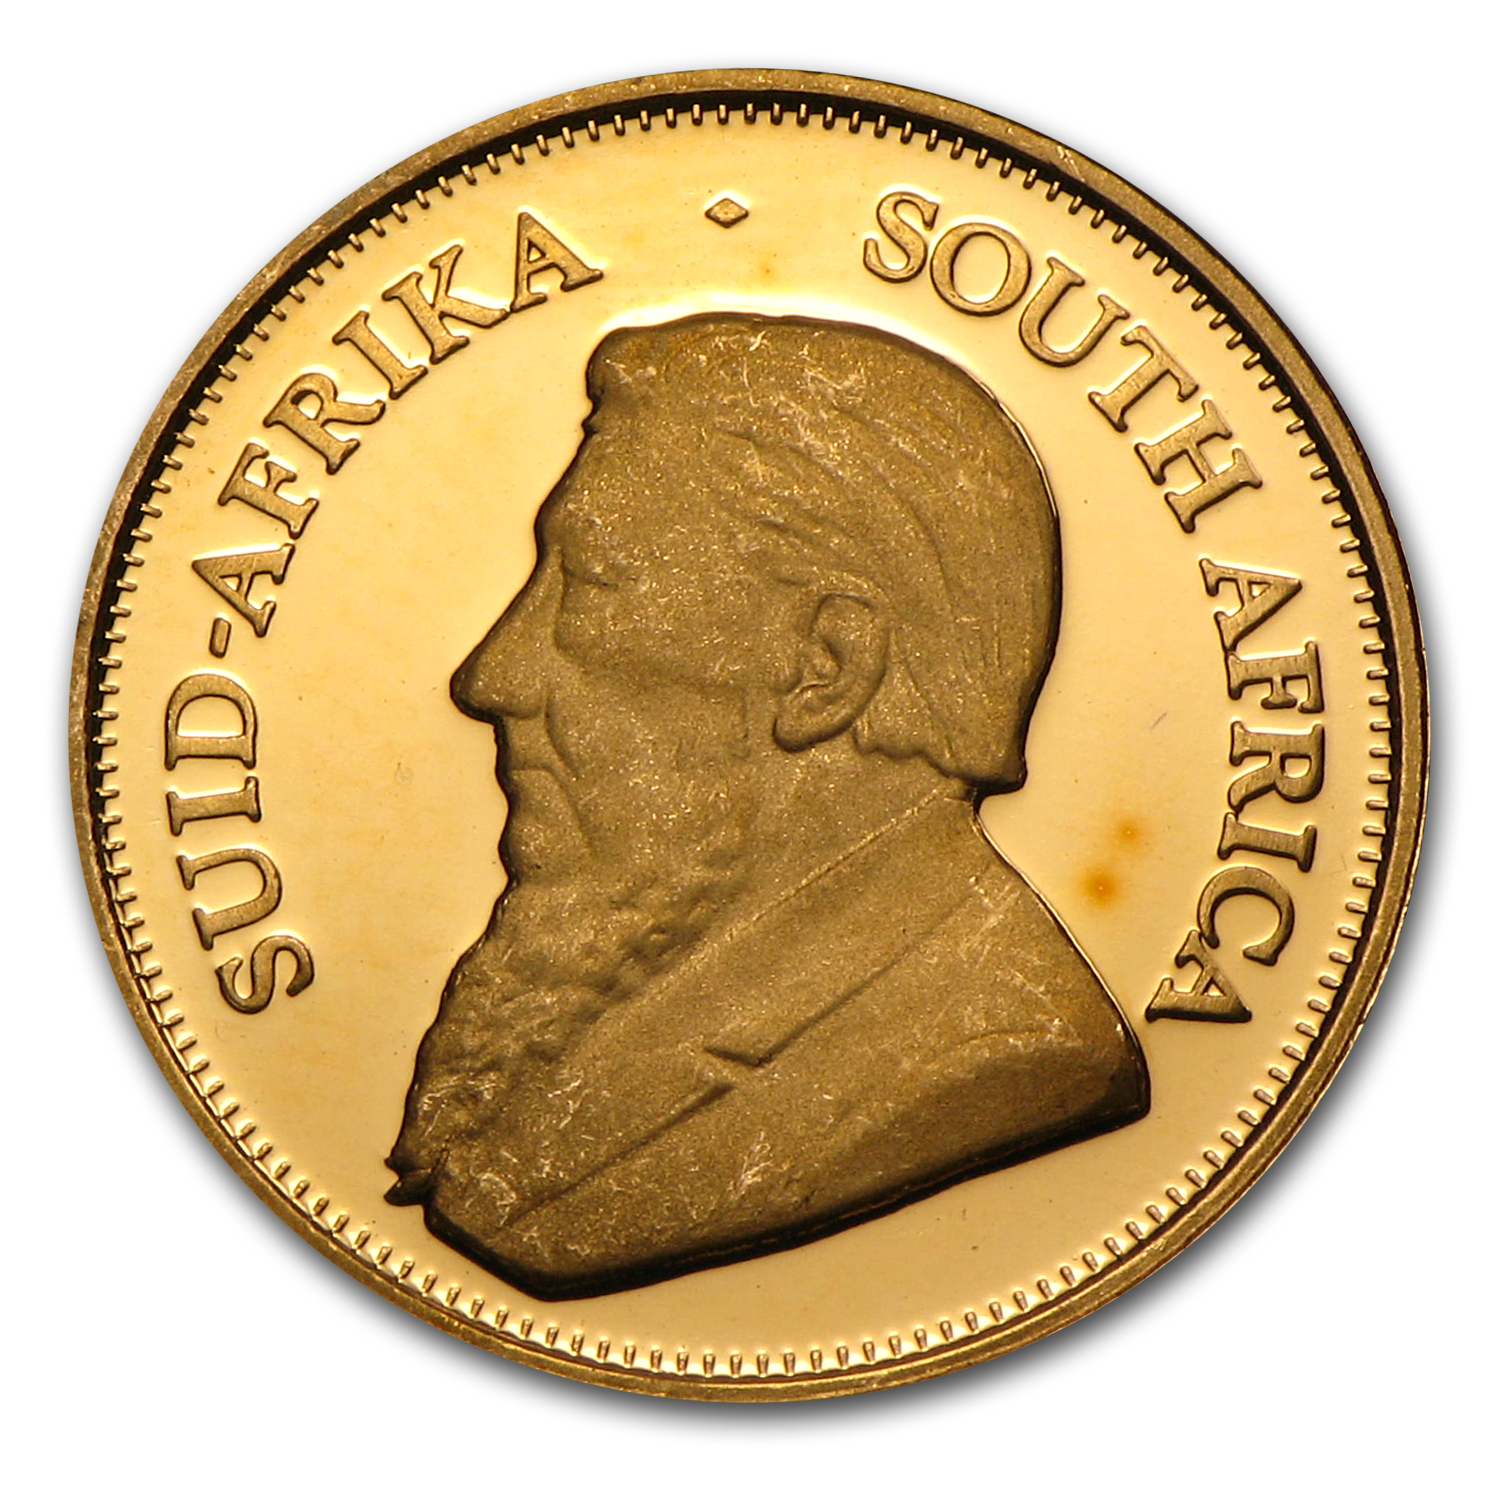 2006 1/10 oz Gold South African Krugerrand (Proof)